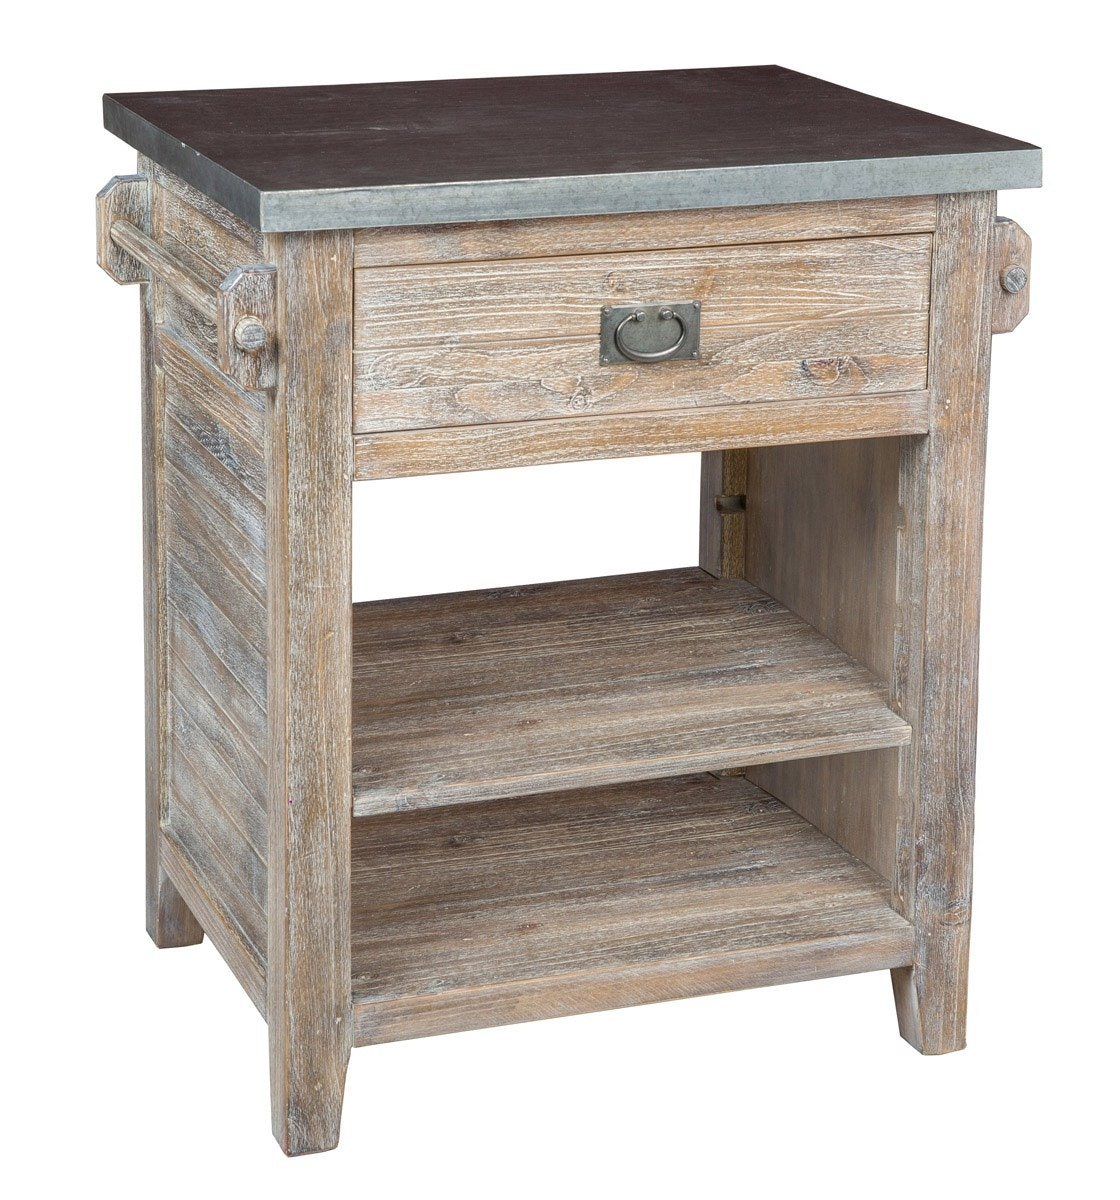 Great Classic Home Argus Kitchen Island W Zinc Top 51004777 In Portland, Oregon